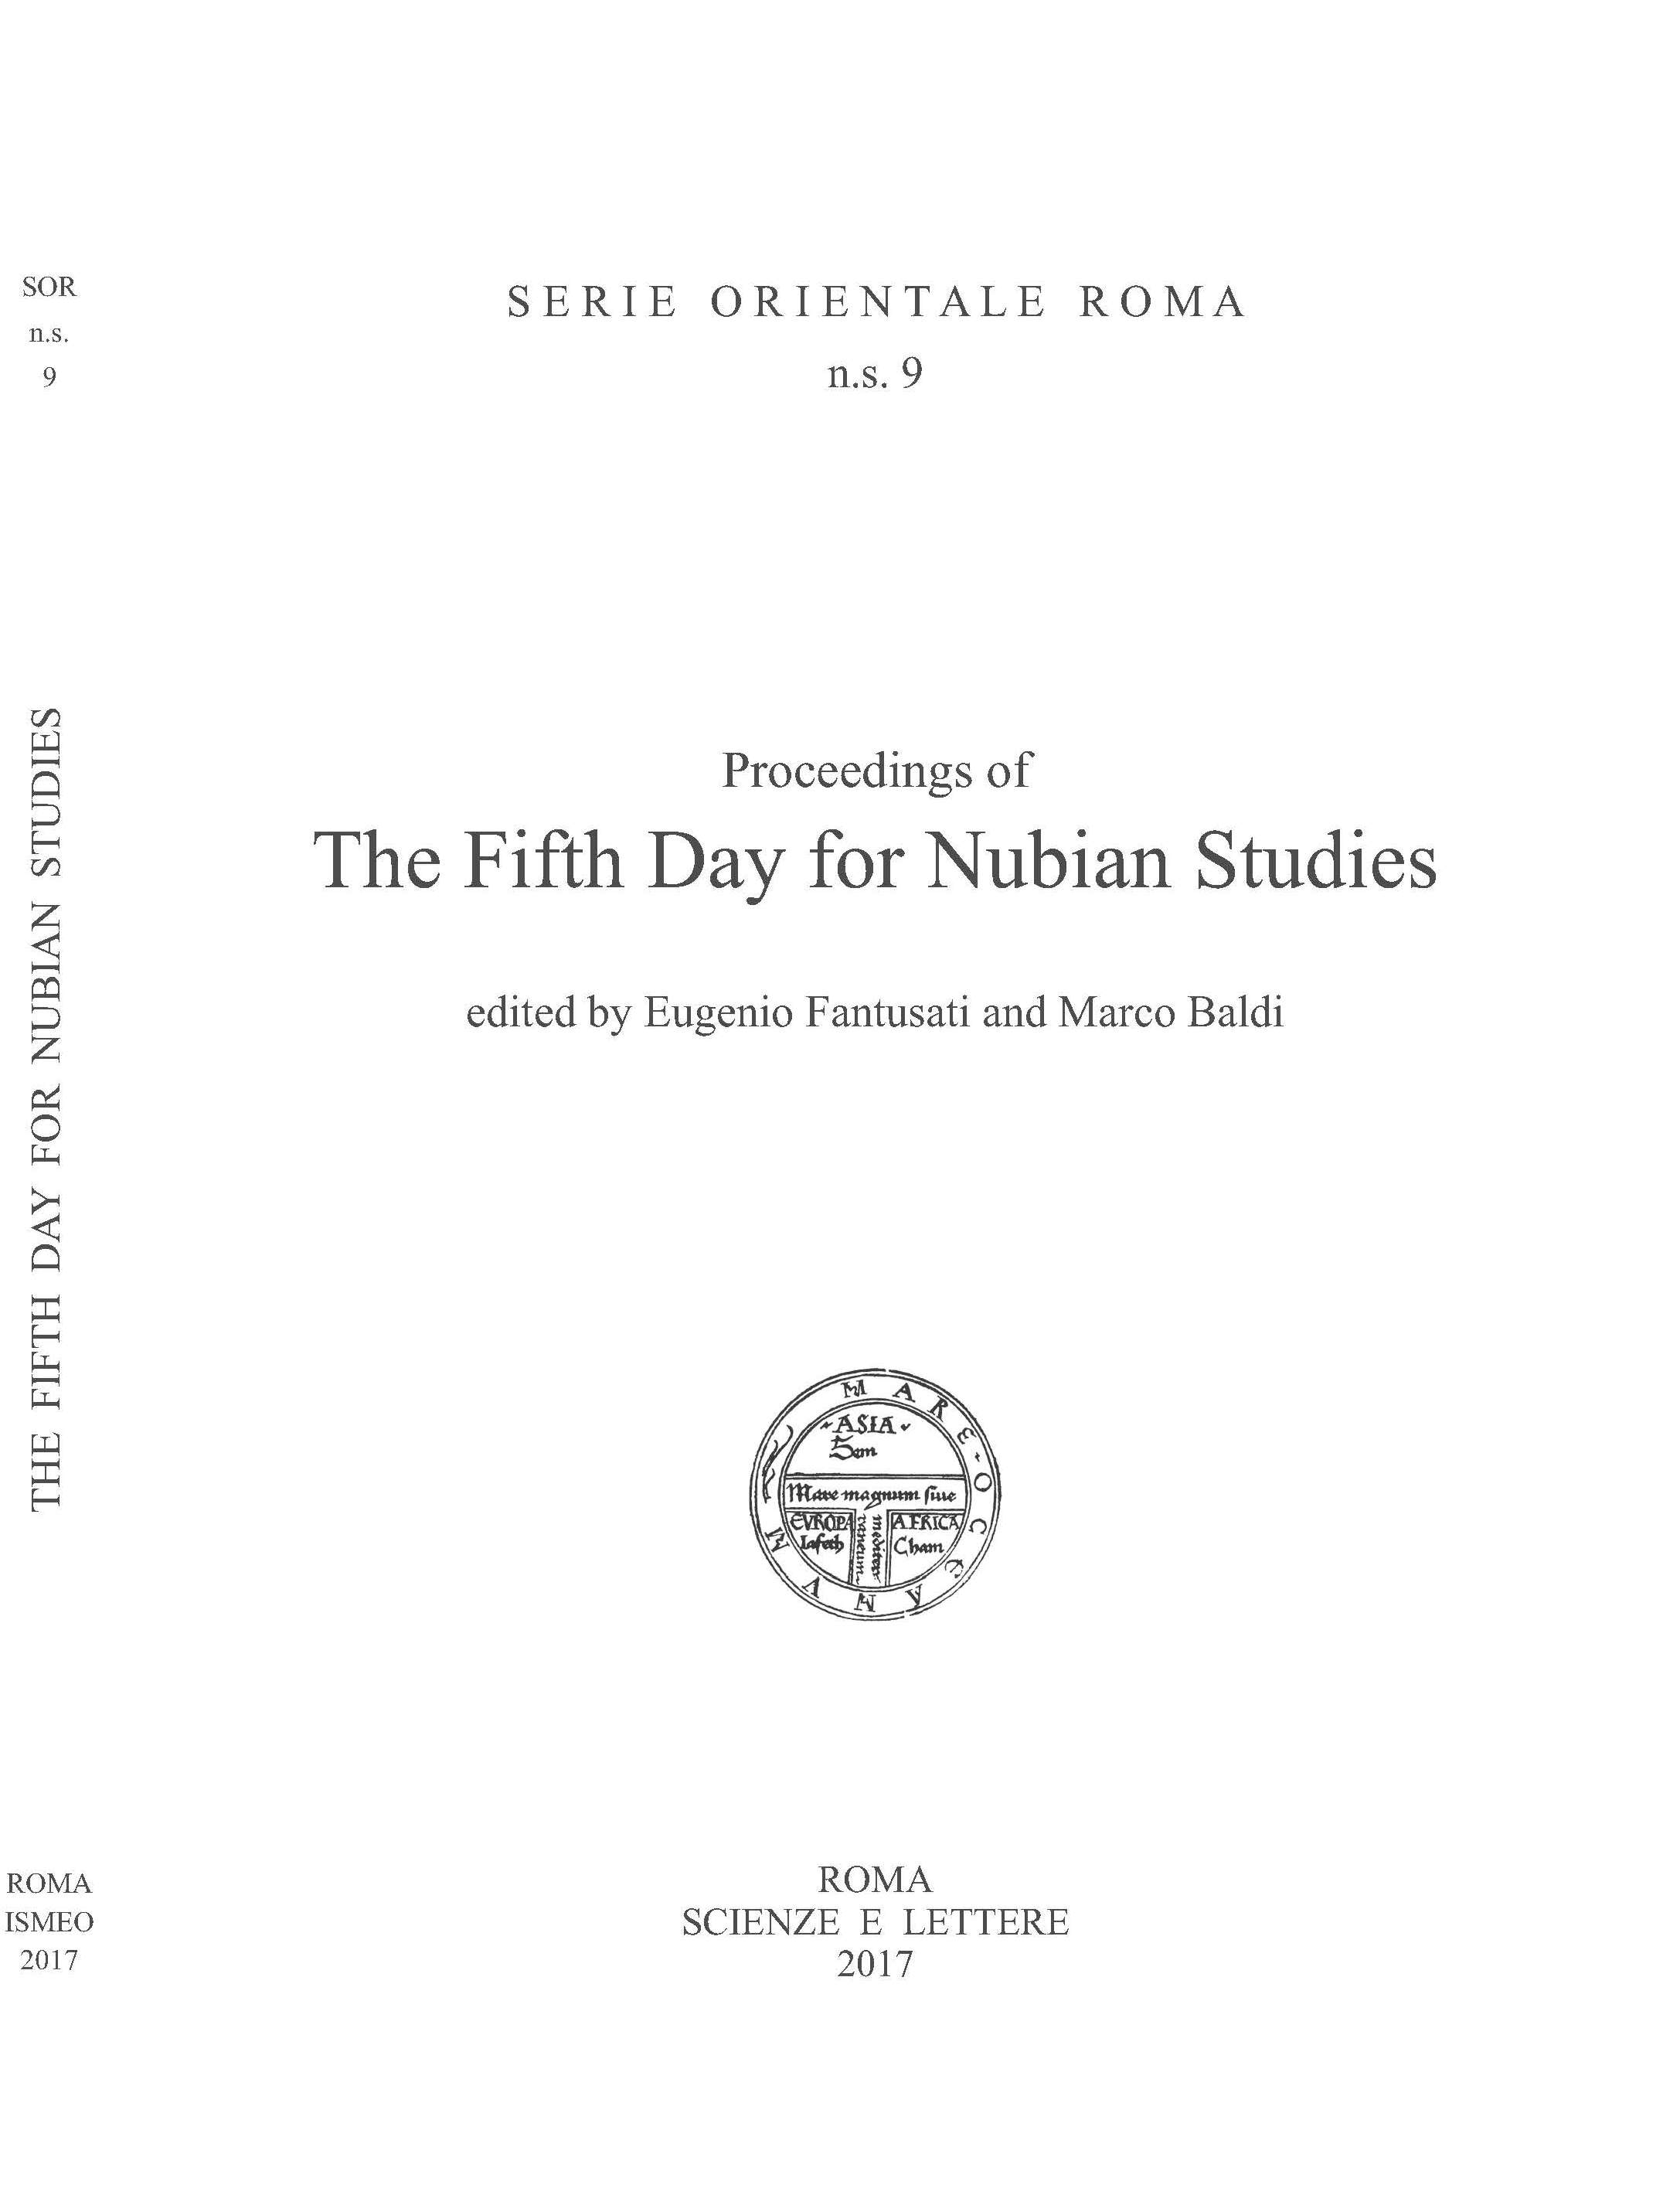 Proceedings of The Fifth Day for Nubian Studies